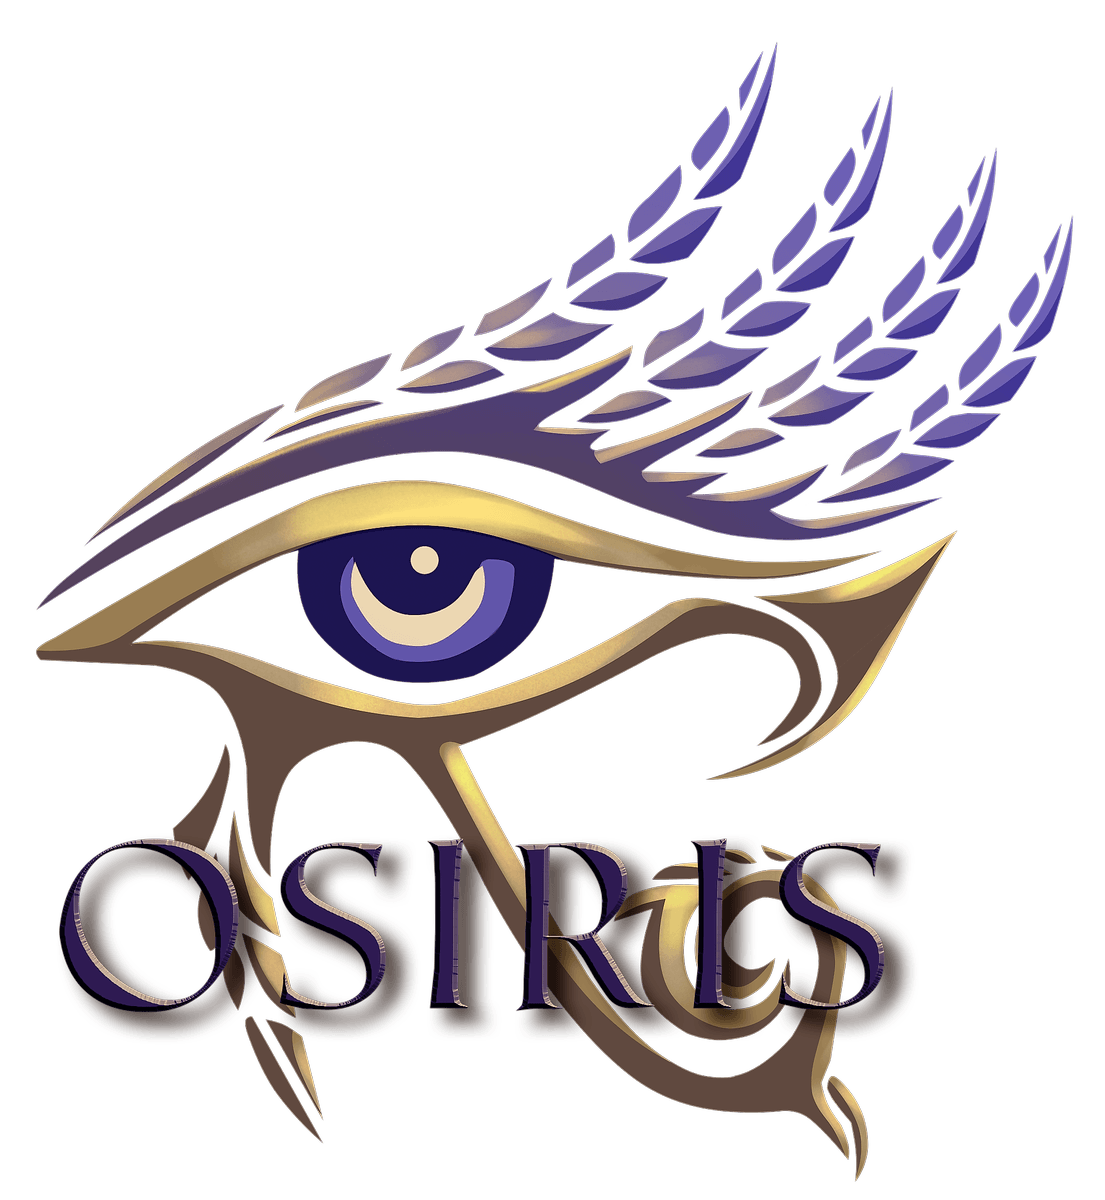 Osiris Logo - S0loassasin on Twitter: